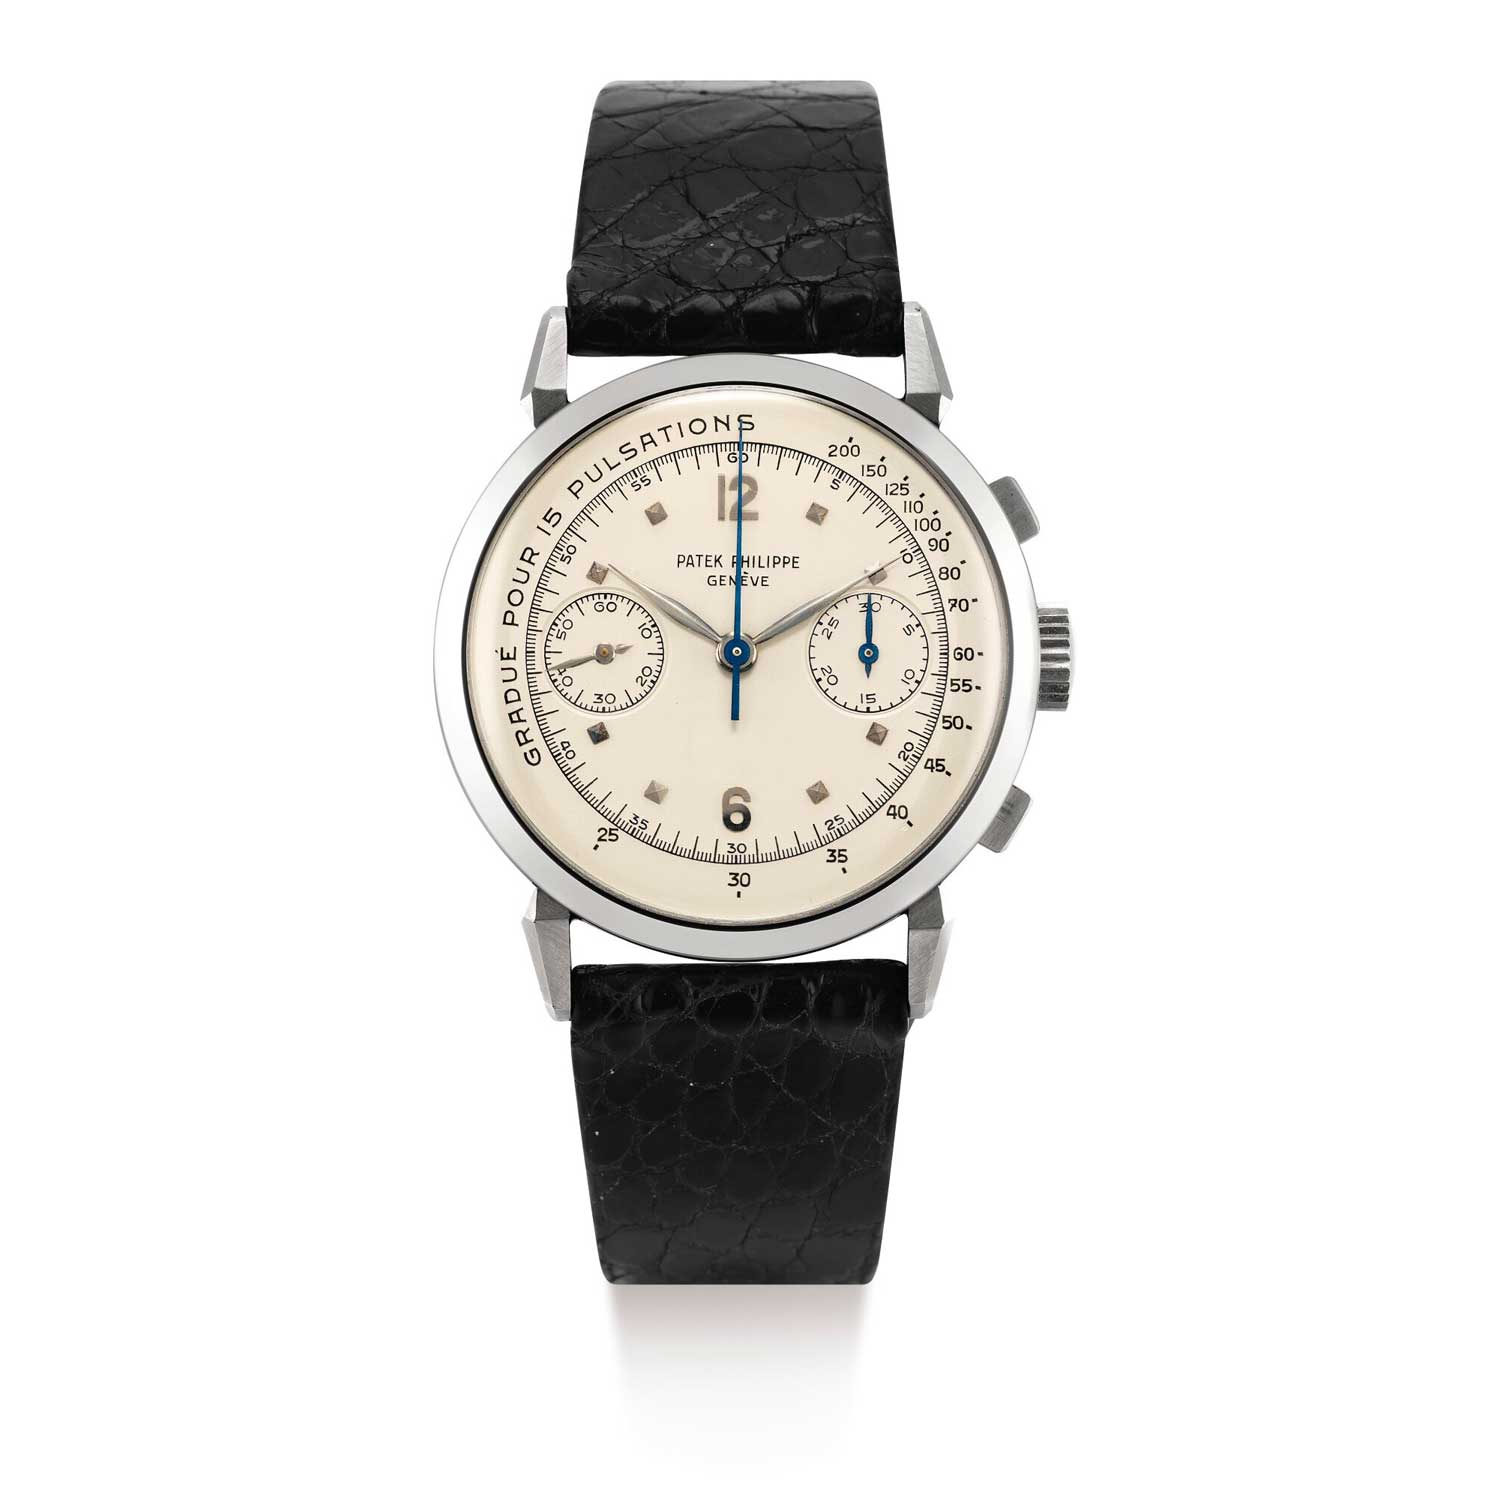 Patek Philippe ref. 1579 stainless steel chronograph wristwatch with registers and pulsation dial; movement made in 1941 and sold in 1942 case and dial circa 1950 completed on special request in 1991 (Image: Sothebys.com)